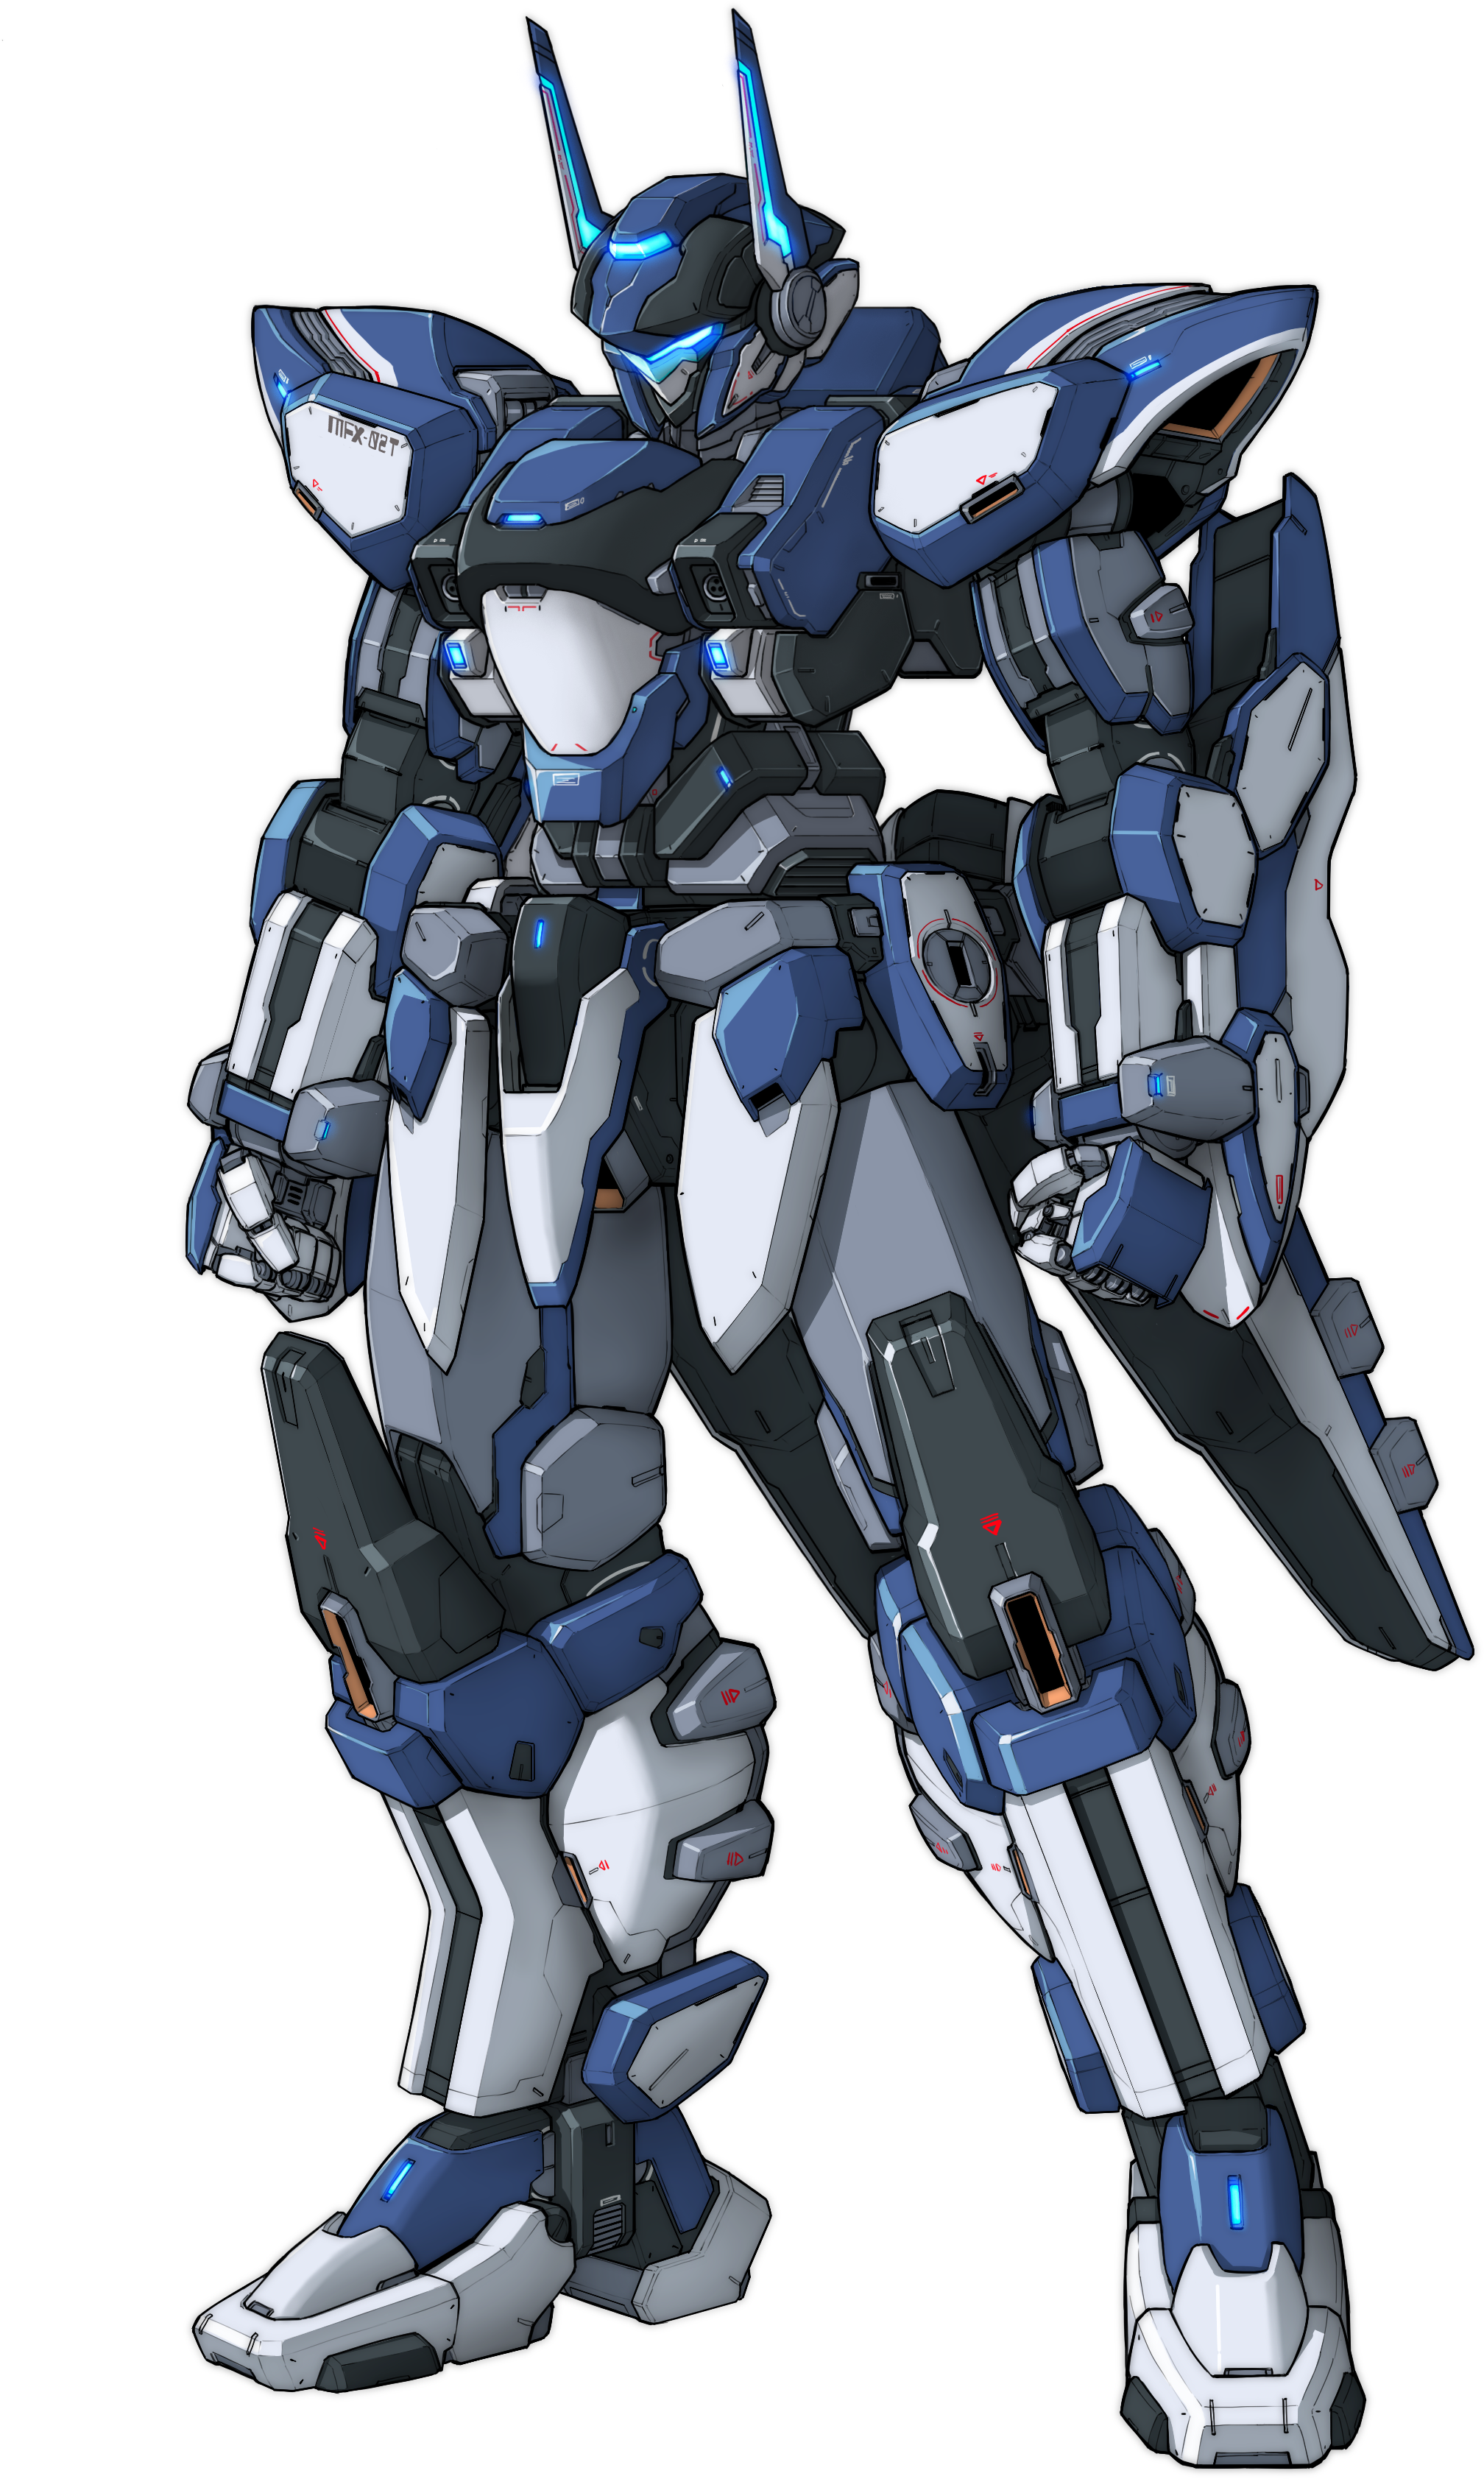 Anime robot png. Pin by odd batt